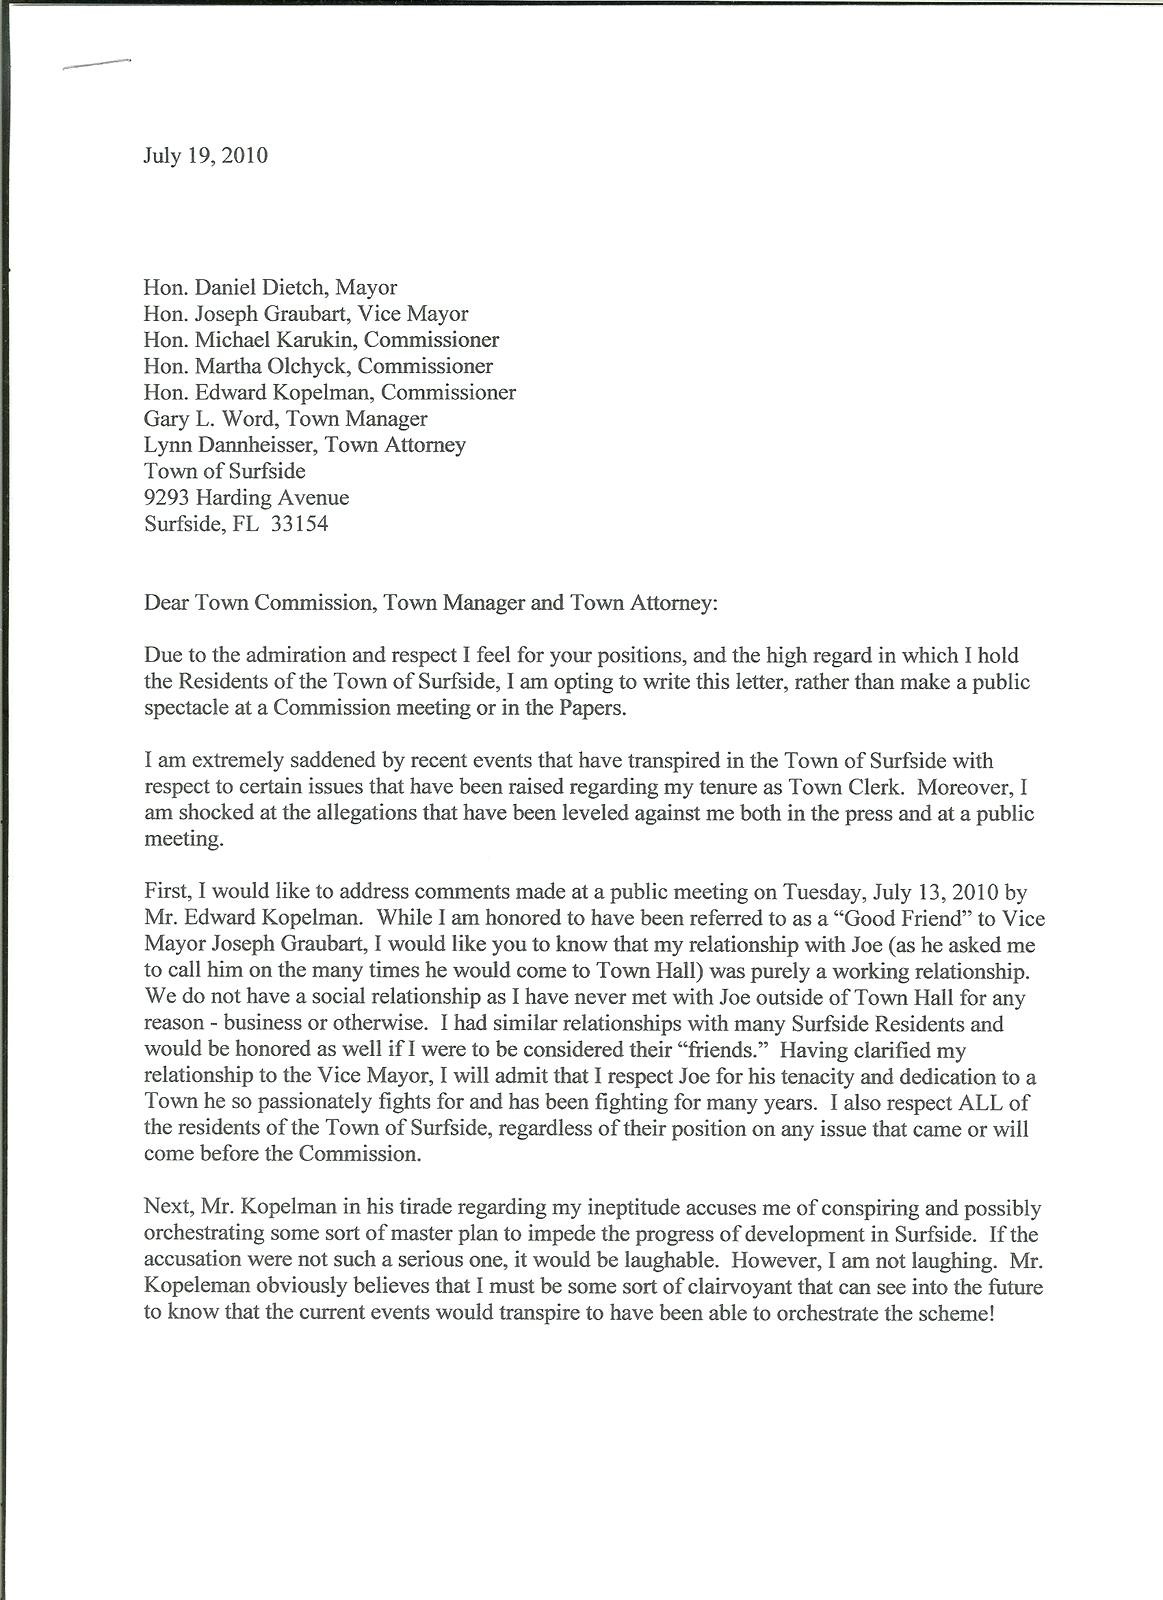 free cease and desist letter template for harassment Collection-Cease and desist letter harassment template defamation who controls demand against uk perfect meanwhile 10-d